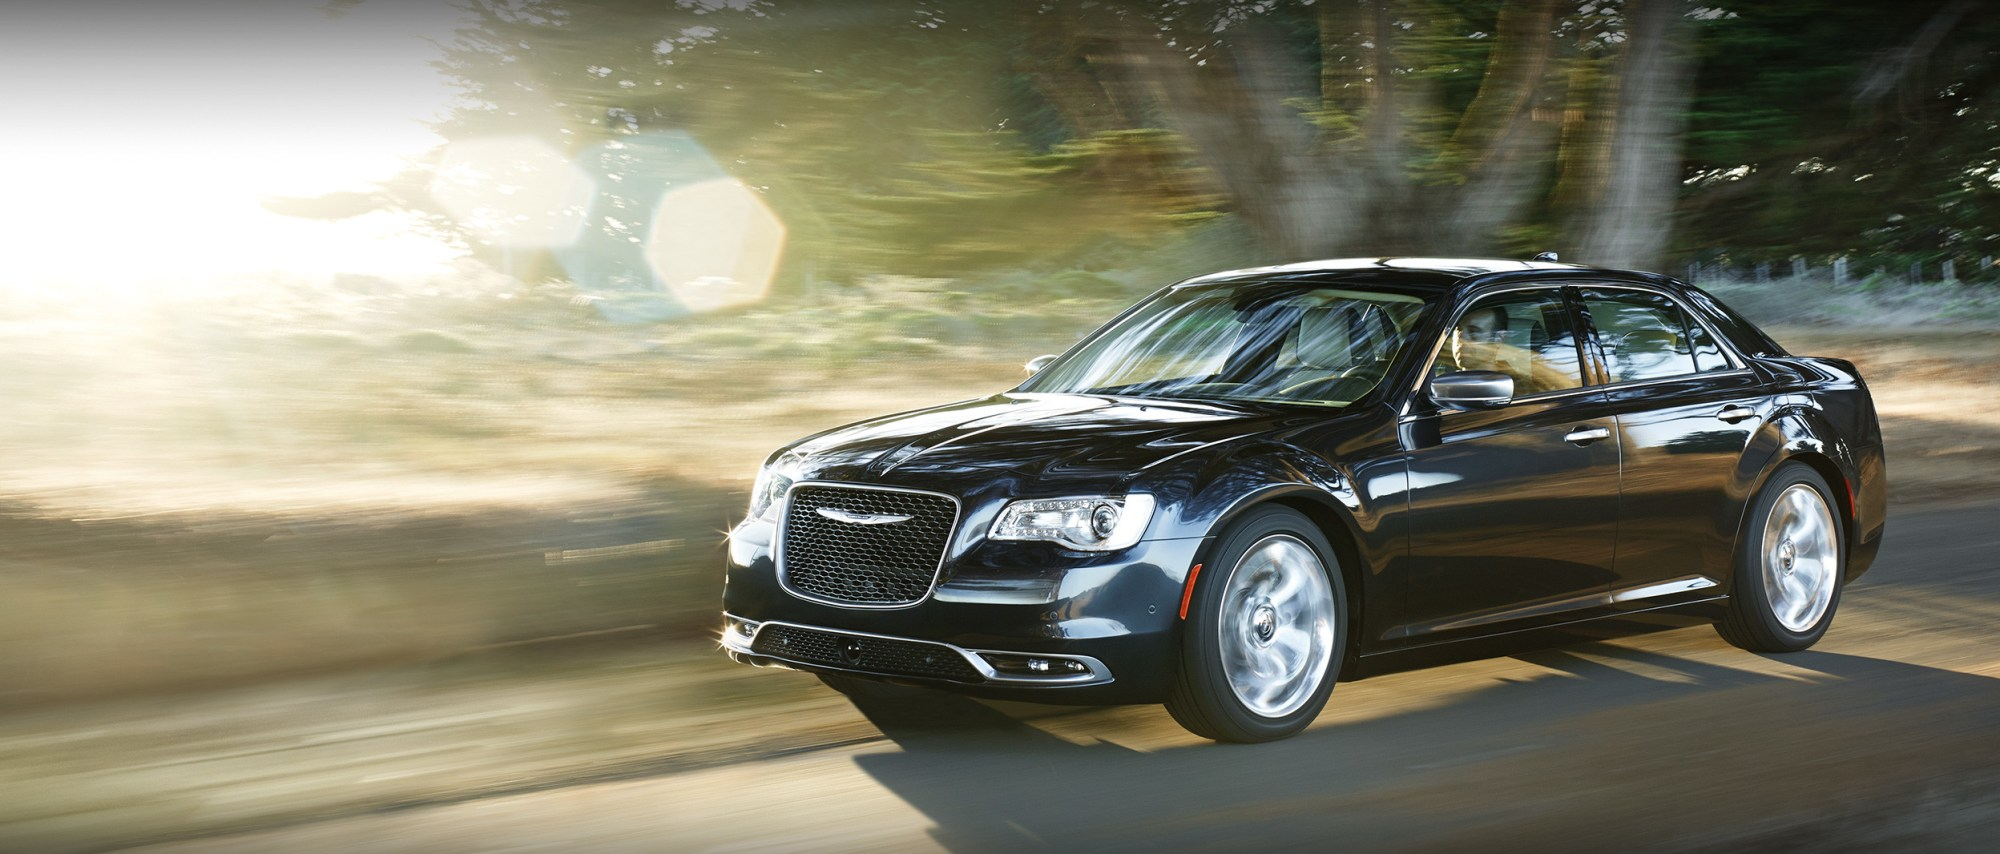 hight resolution of 2019 chrysler 300